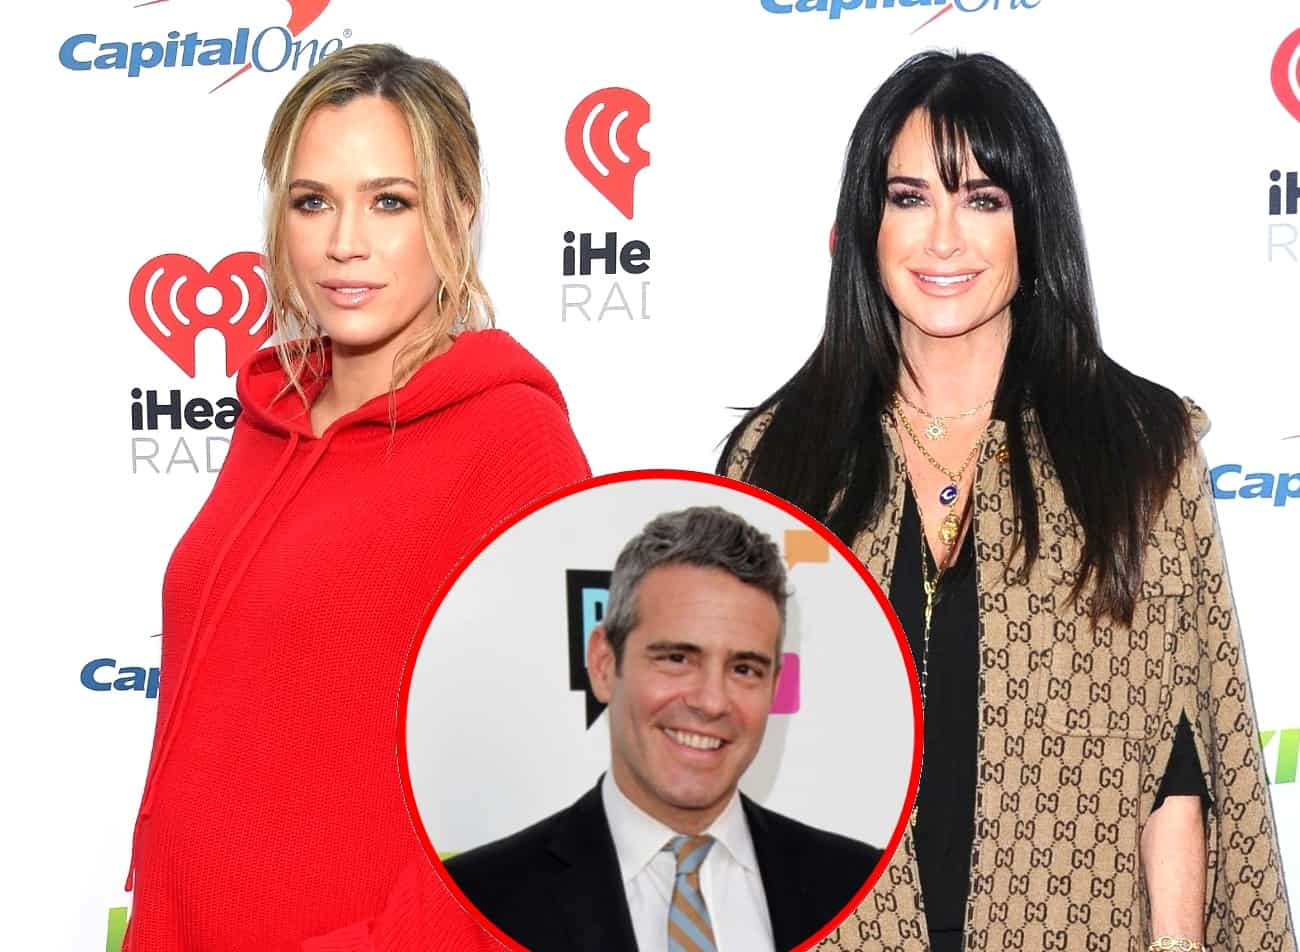 RHOBH's Teddi Mellencamp Reveals Where She Stands With Kyle Richards, Plus She Teases New Season of Show as Andy Cohen Talks RHOBH Trailer Release Date